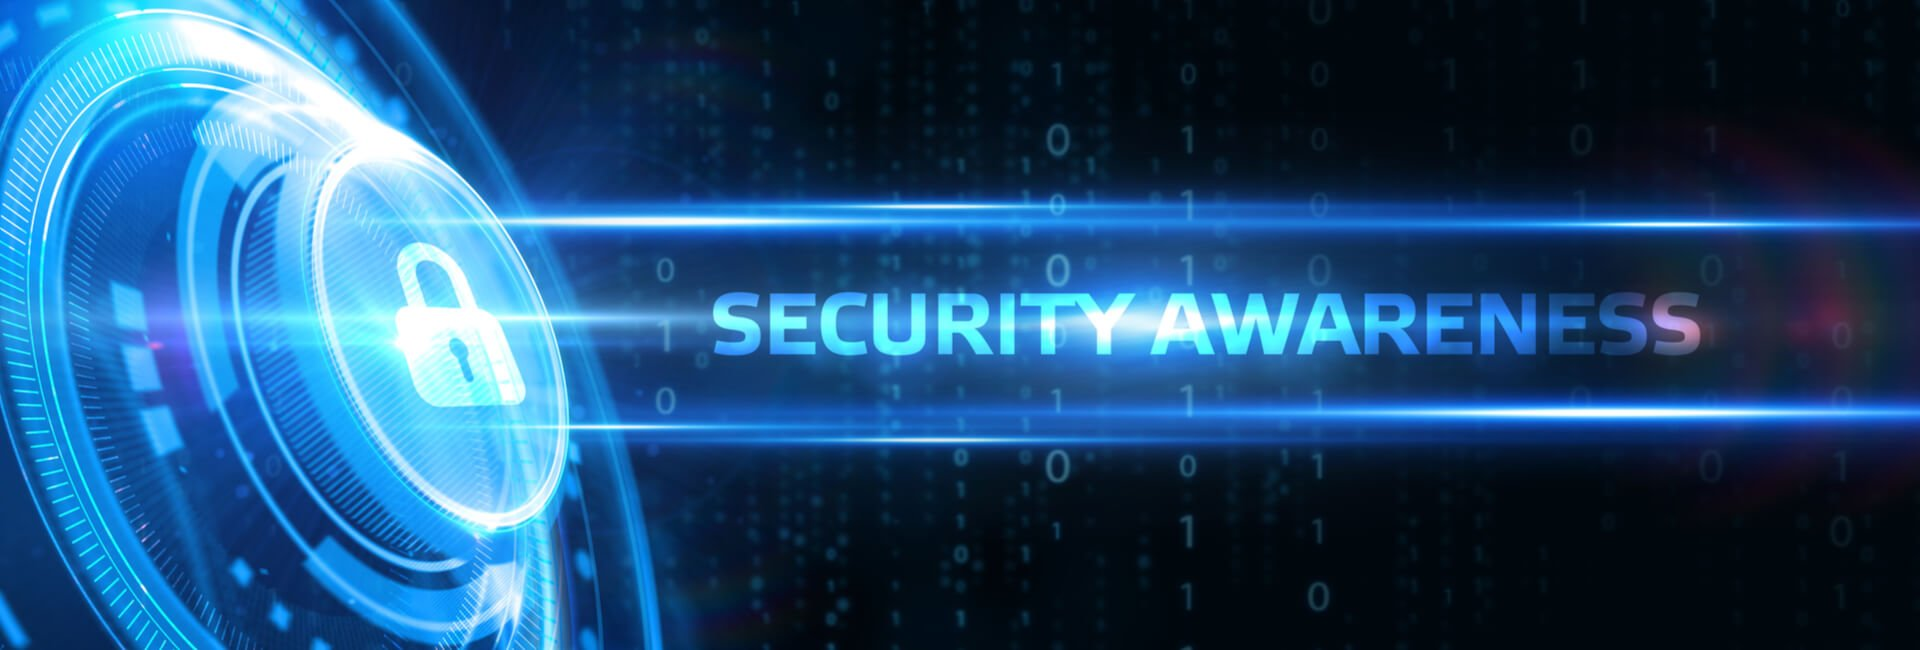 Security awareness: come farla davvero efficace